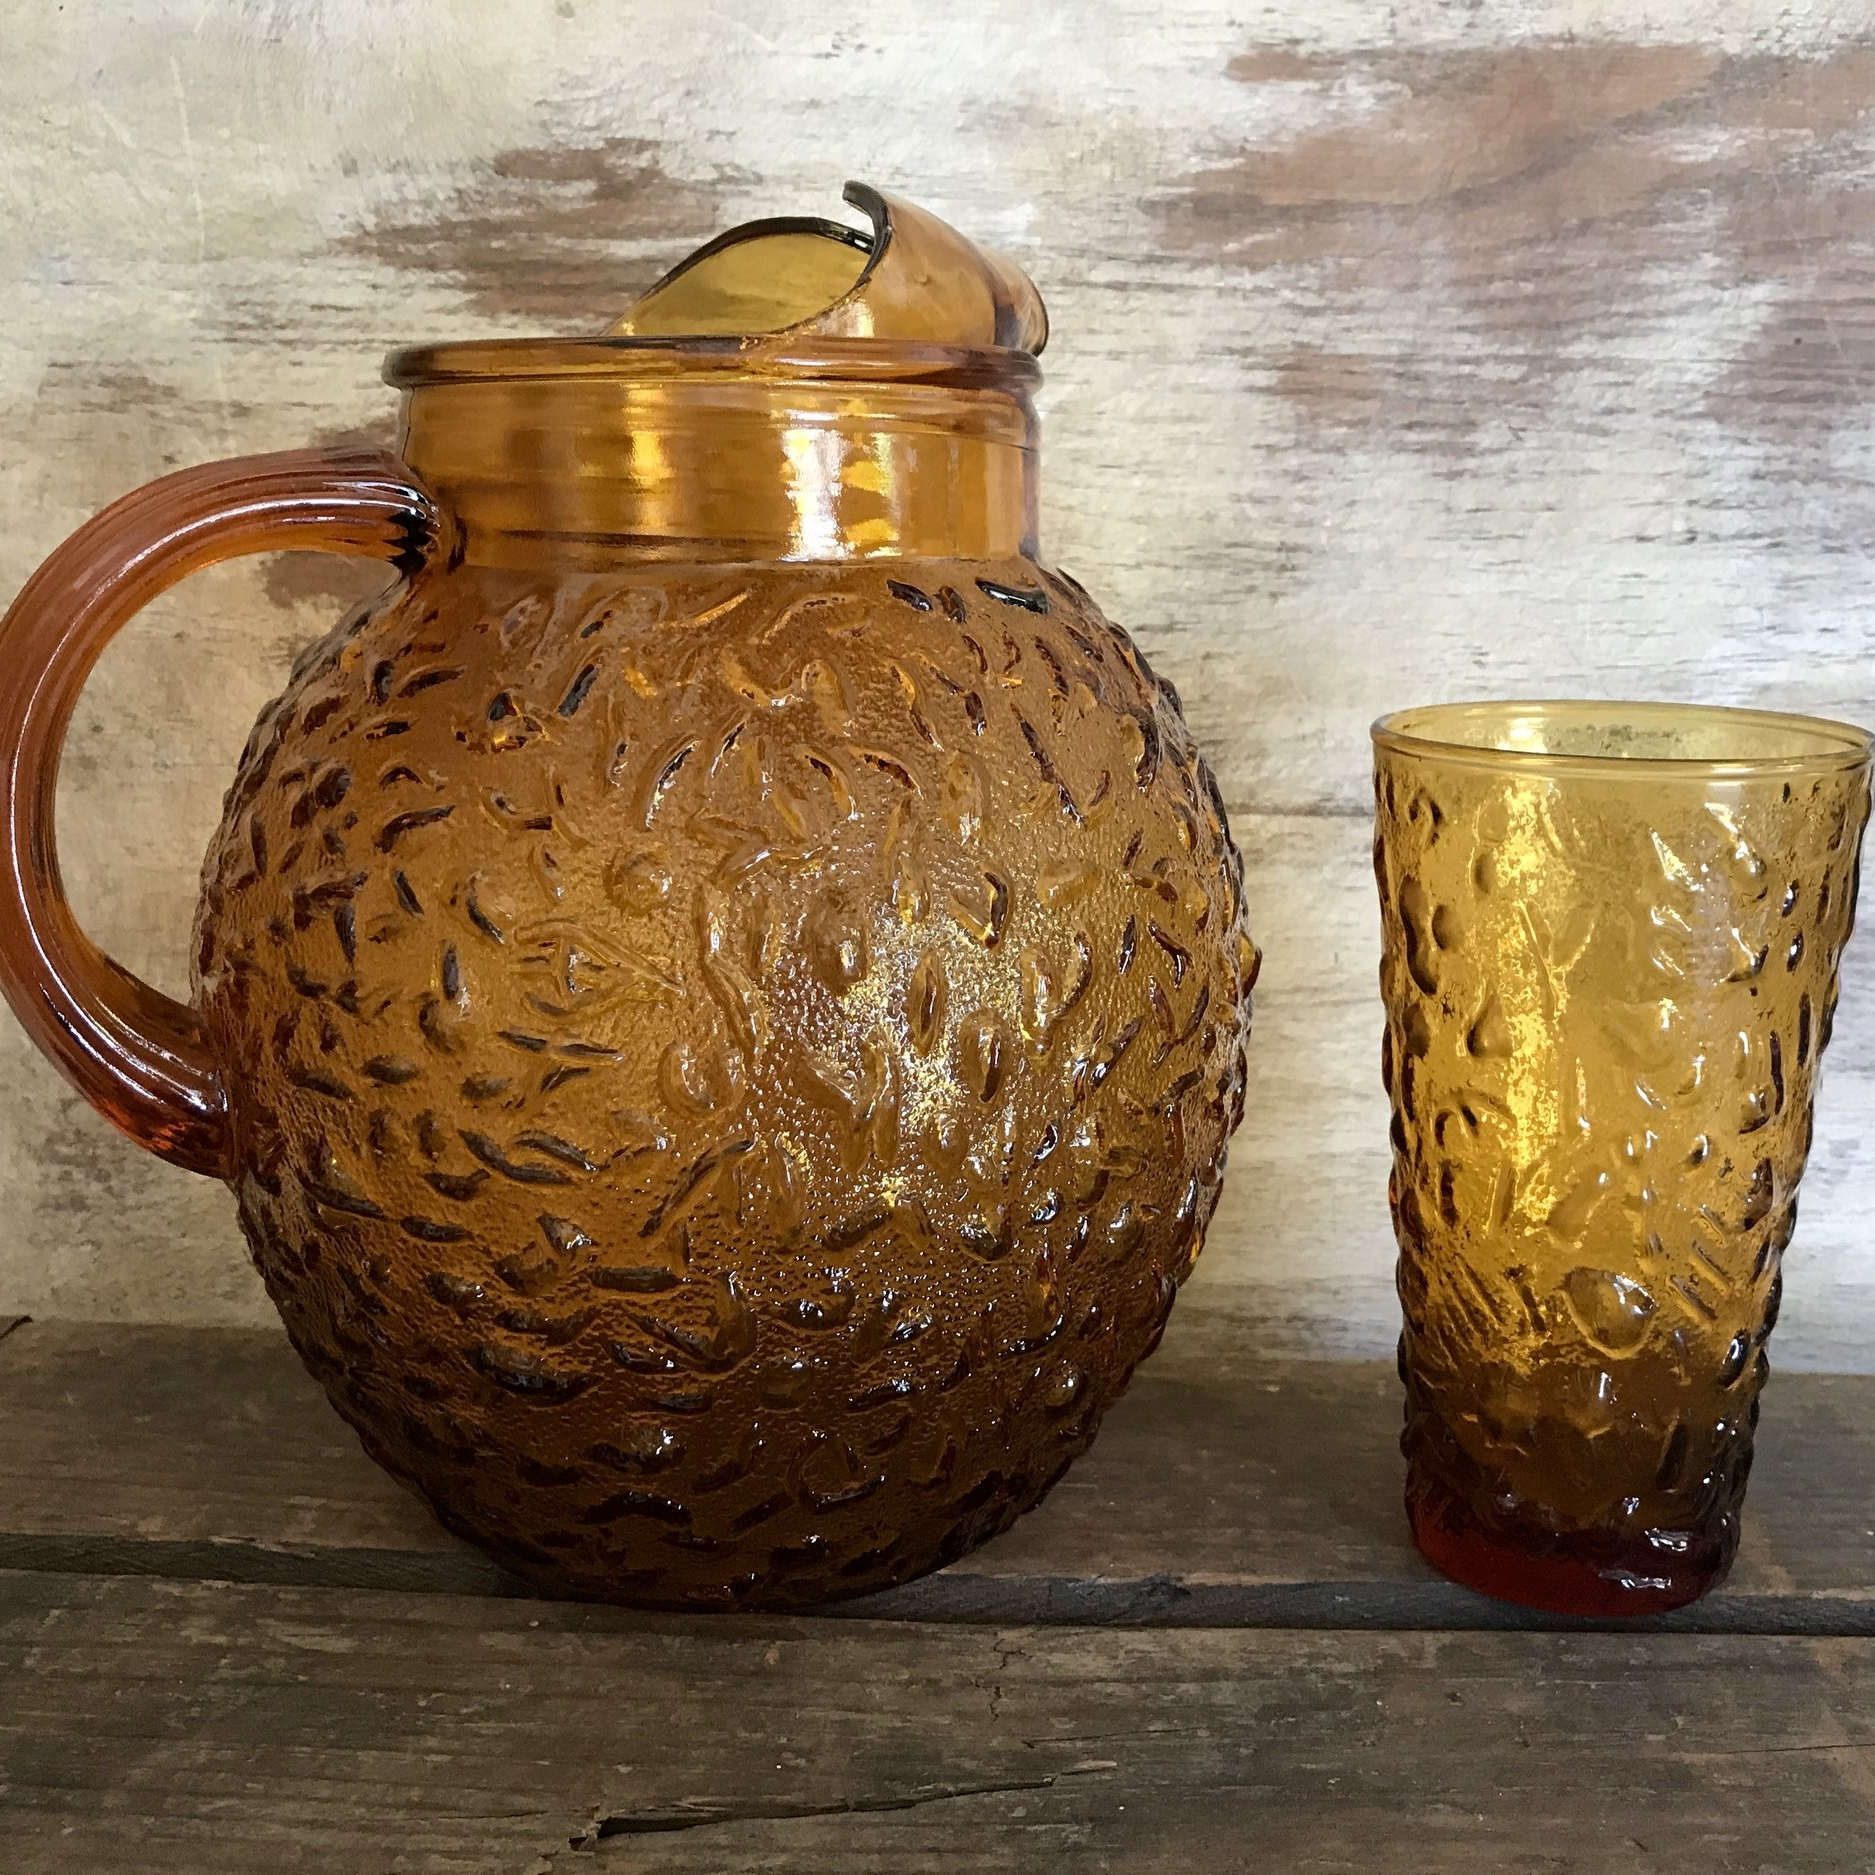 Mid Century Modern amber glass pitcher with matching tumblers. Vintage wedding rentals in The Temecula Valley.